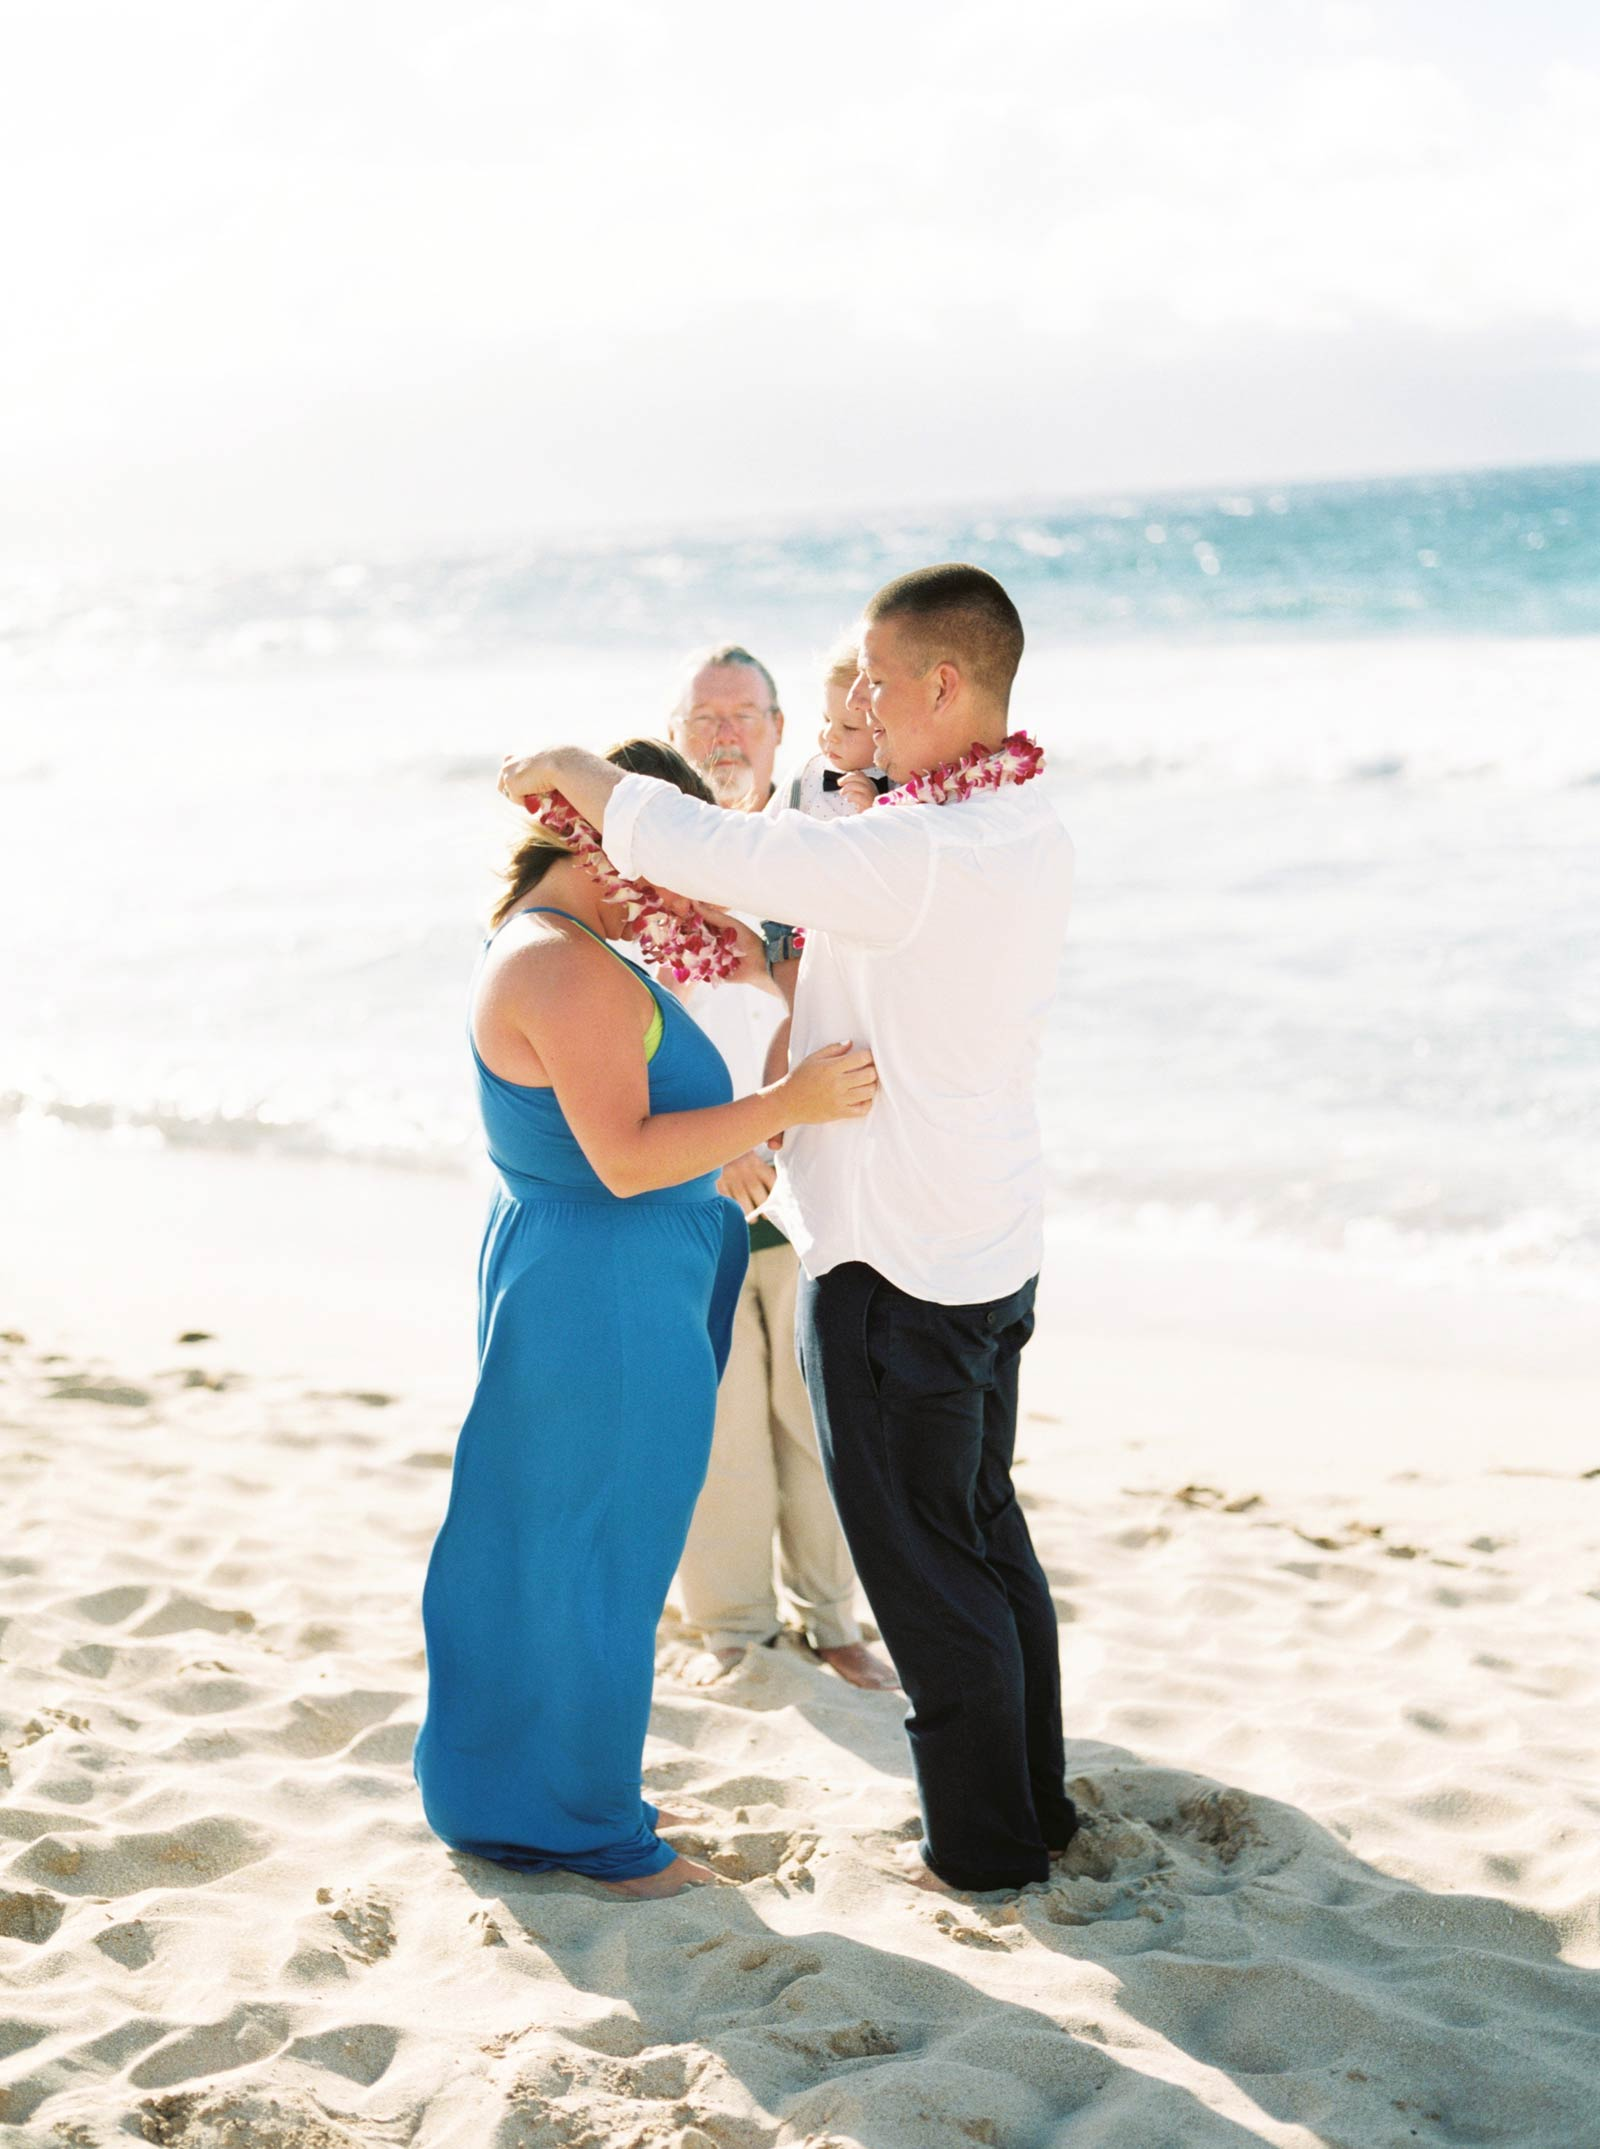 Maui-vow-renewal-family-photos-014.jpg